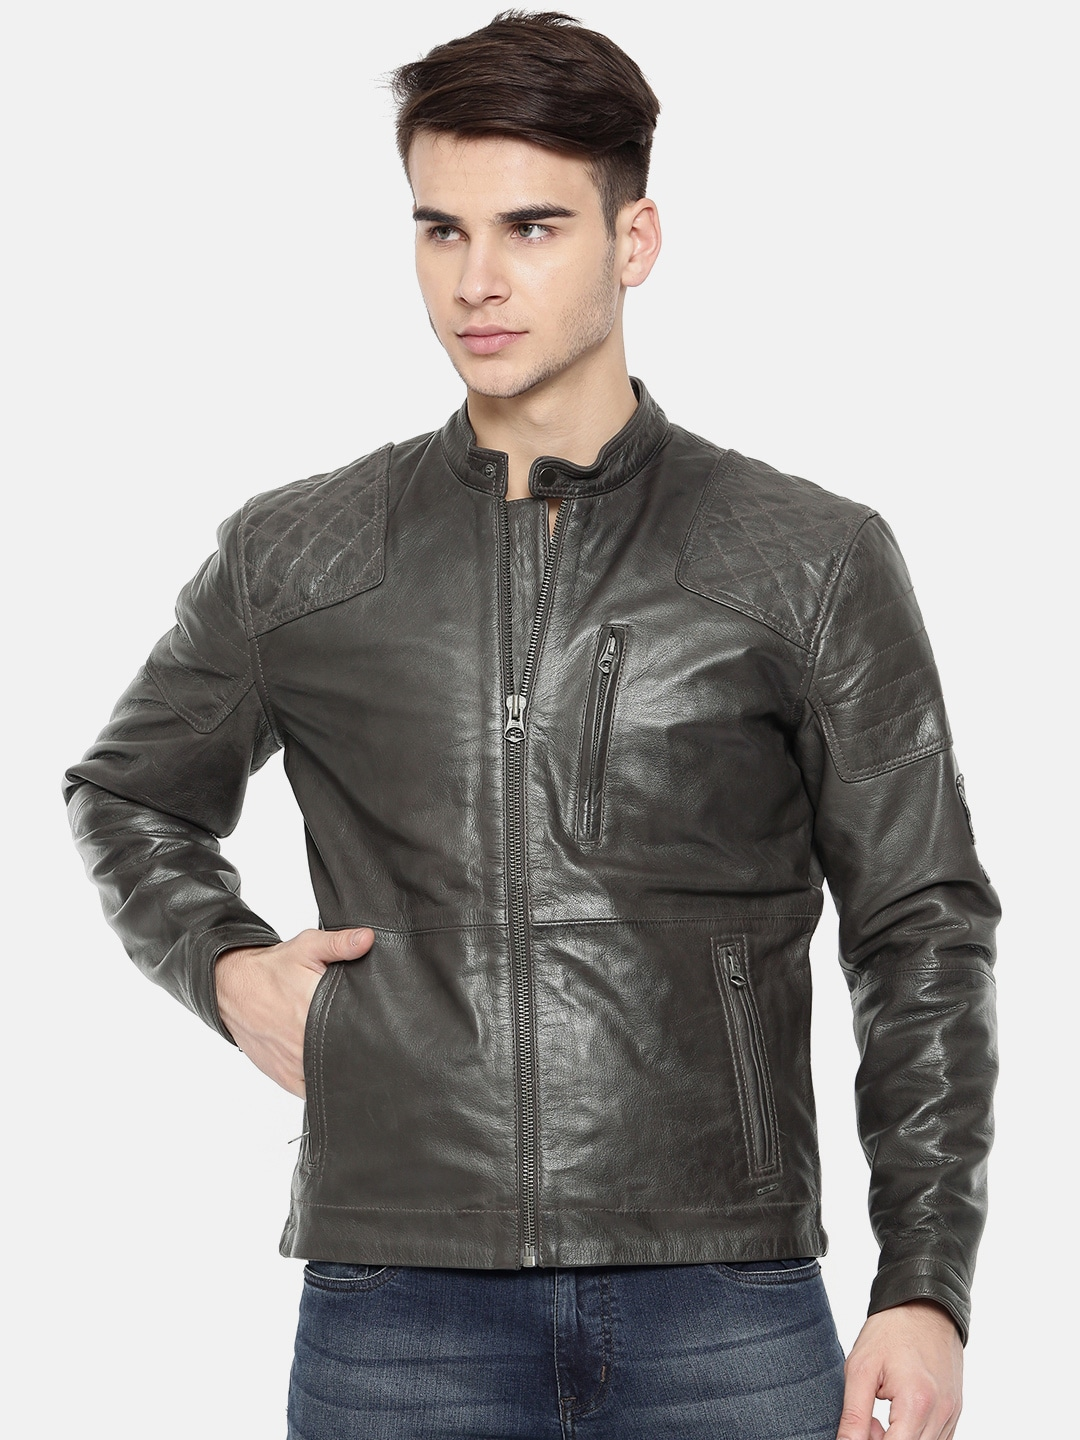 best authentic cca52 a8453 Pepe Jeans Men Charcoal Grey Solid Leather Jacket